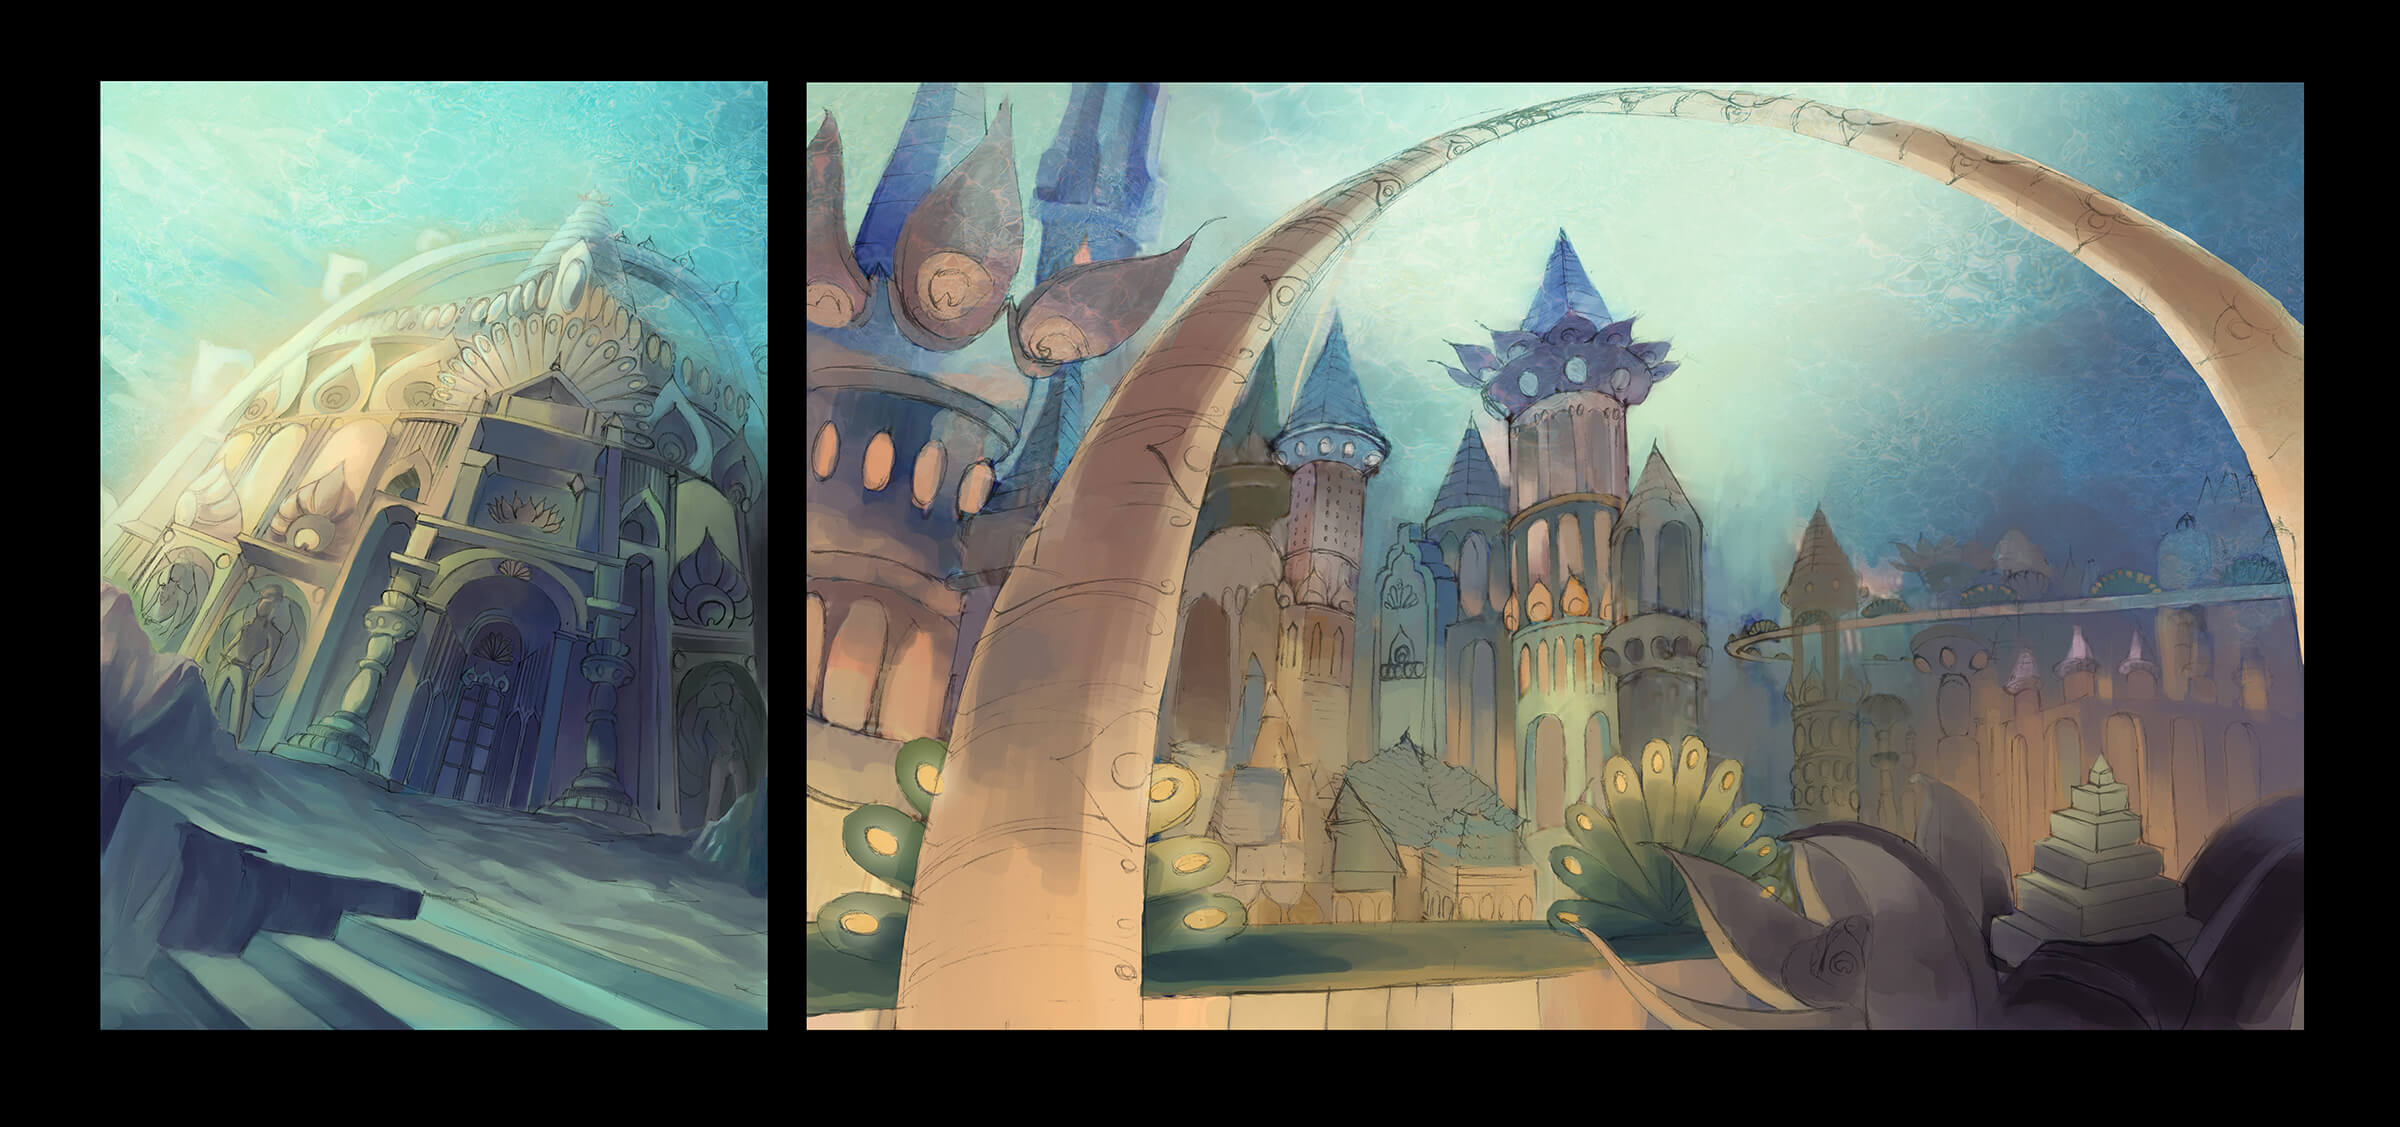 Two views of an underwater city colored in muted pastel tones, full of towers, arches, and massive, ornate buildings.